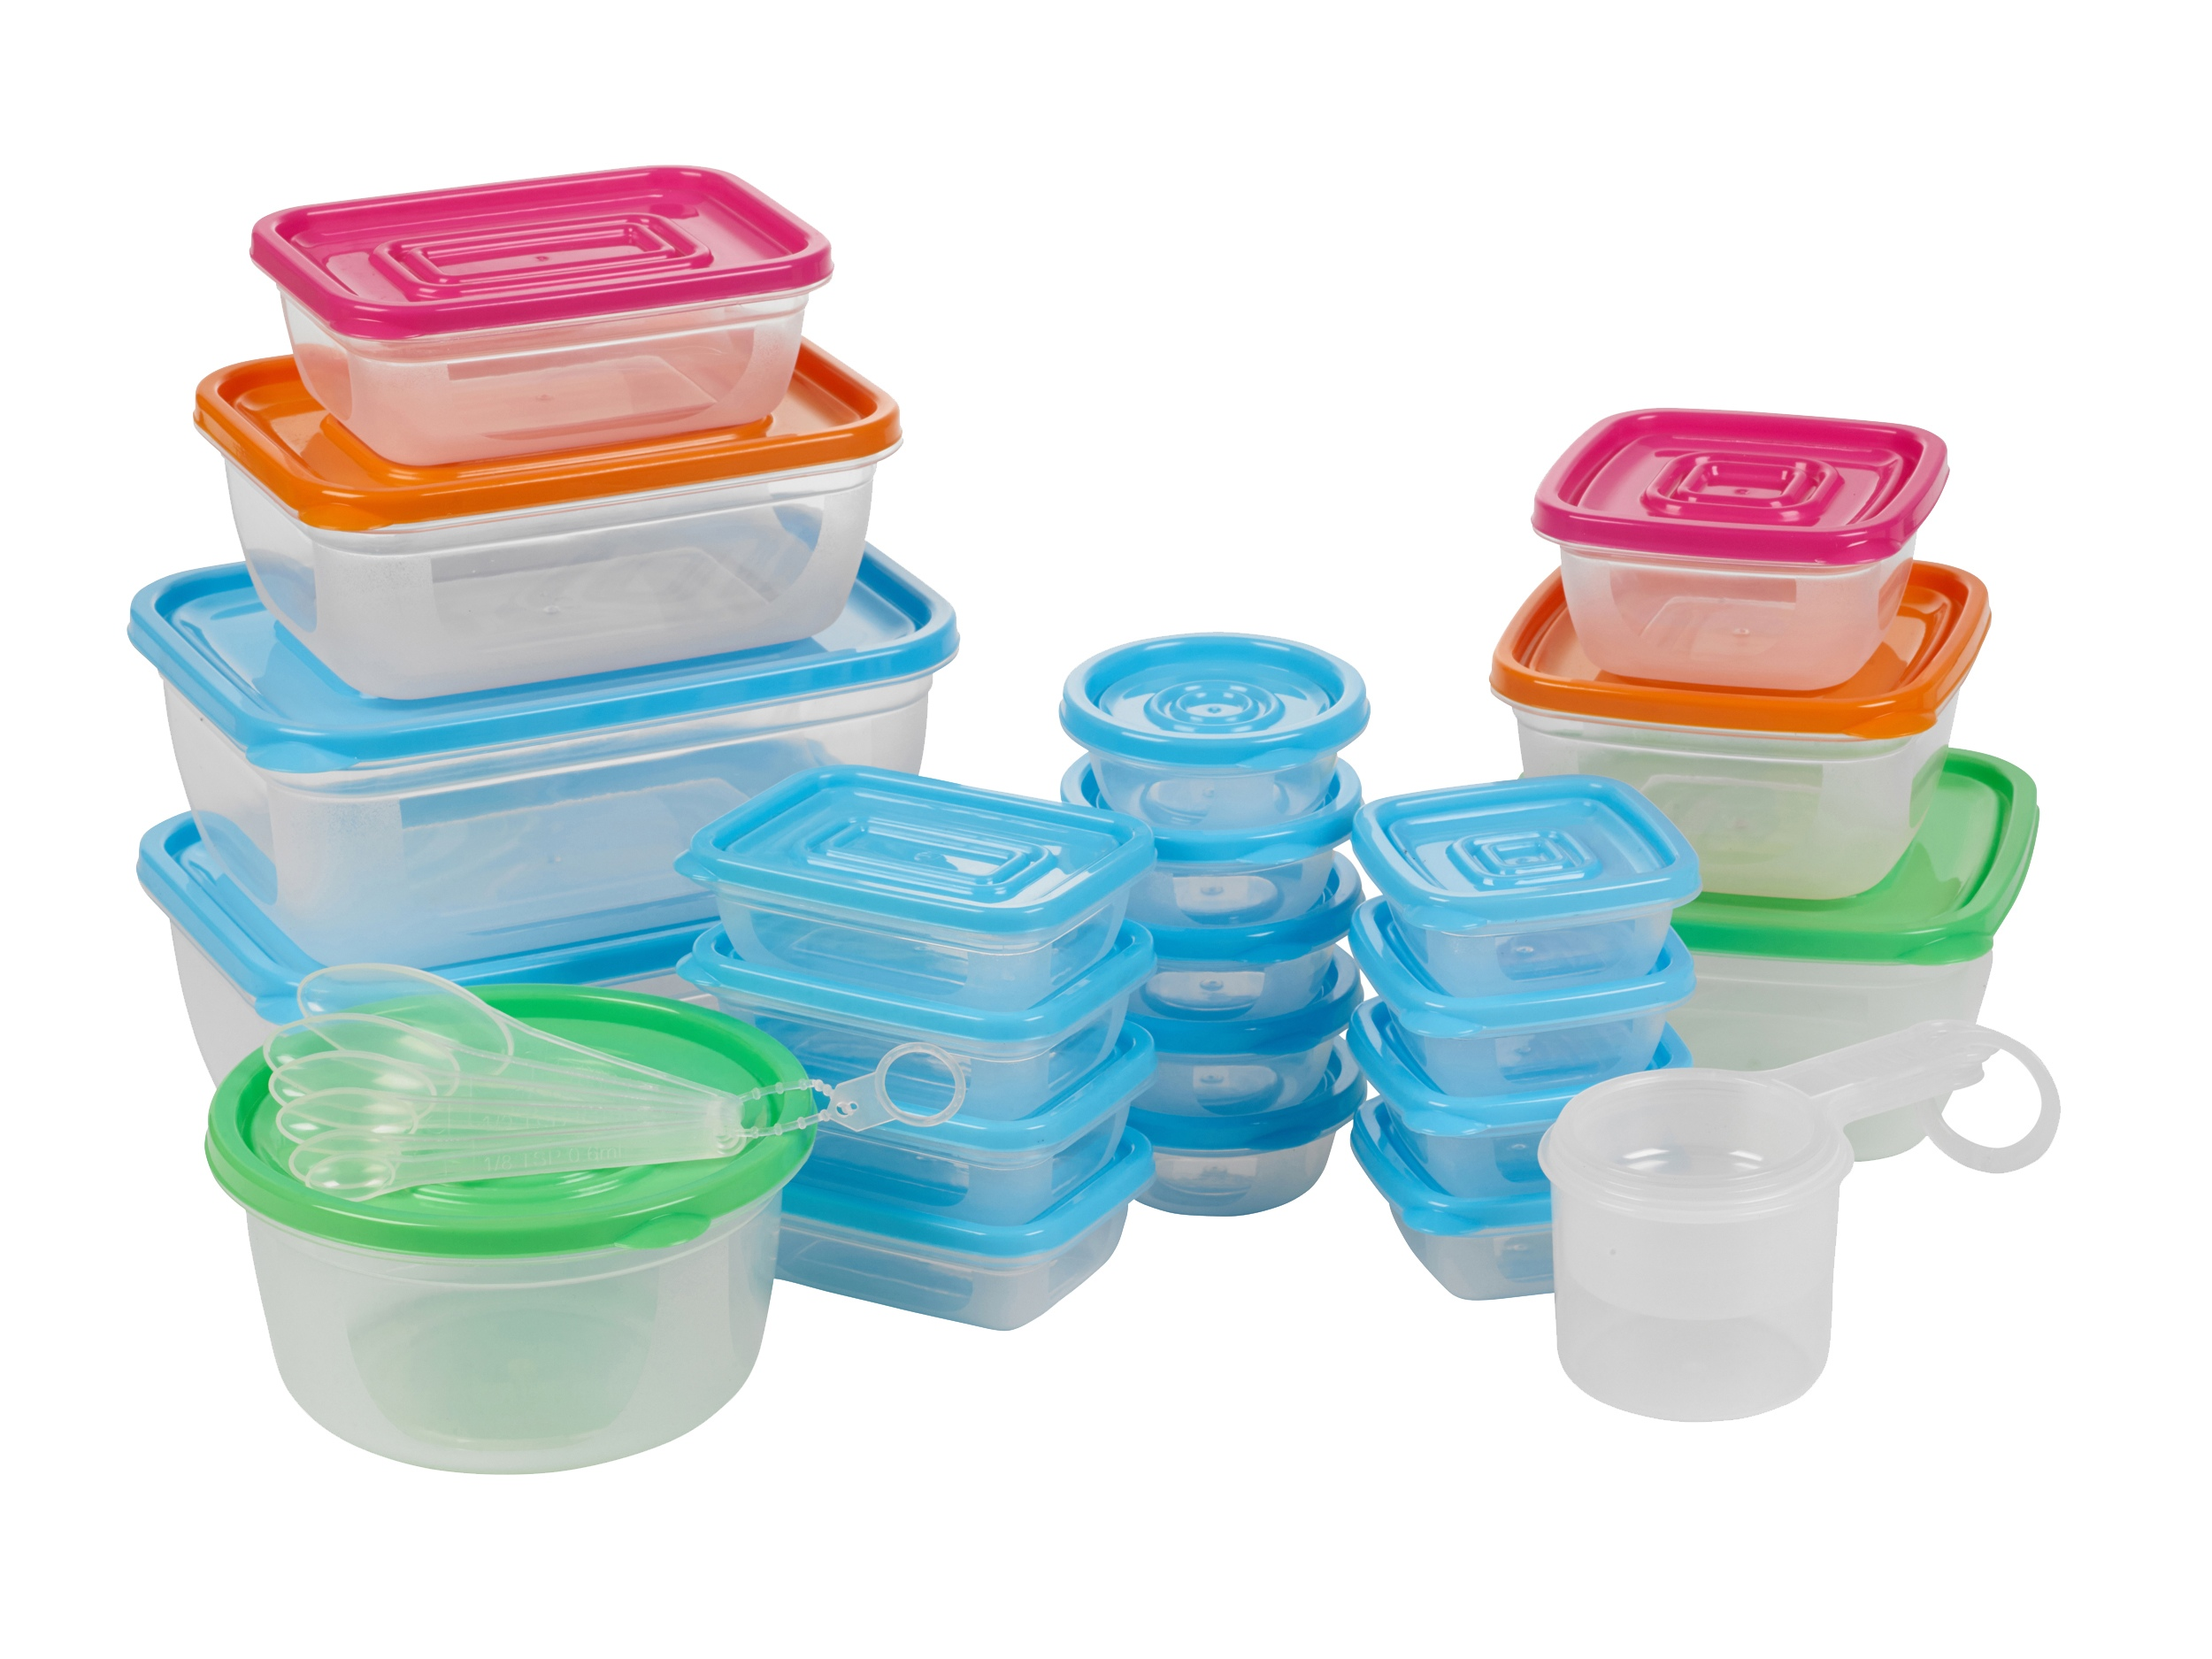 Reusable Food Delivery Containers